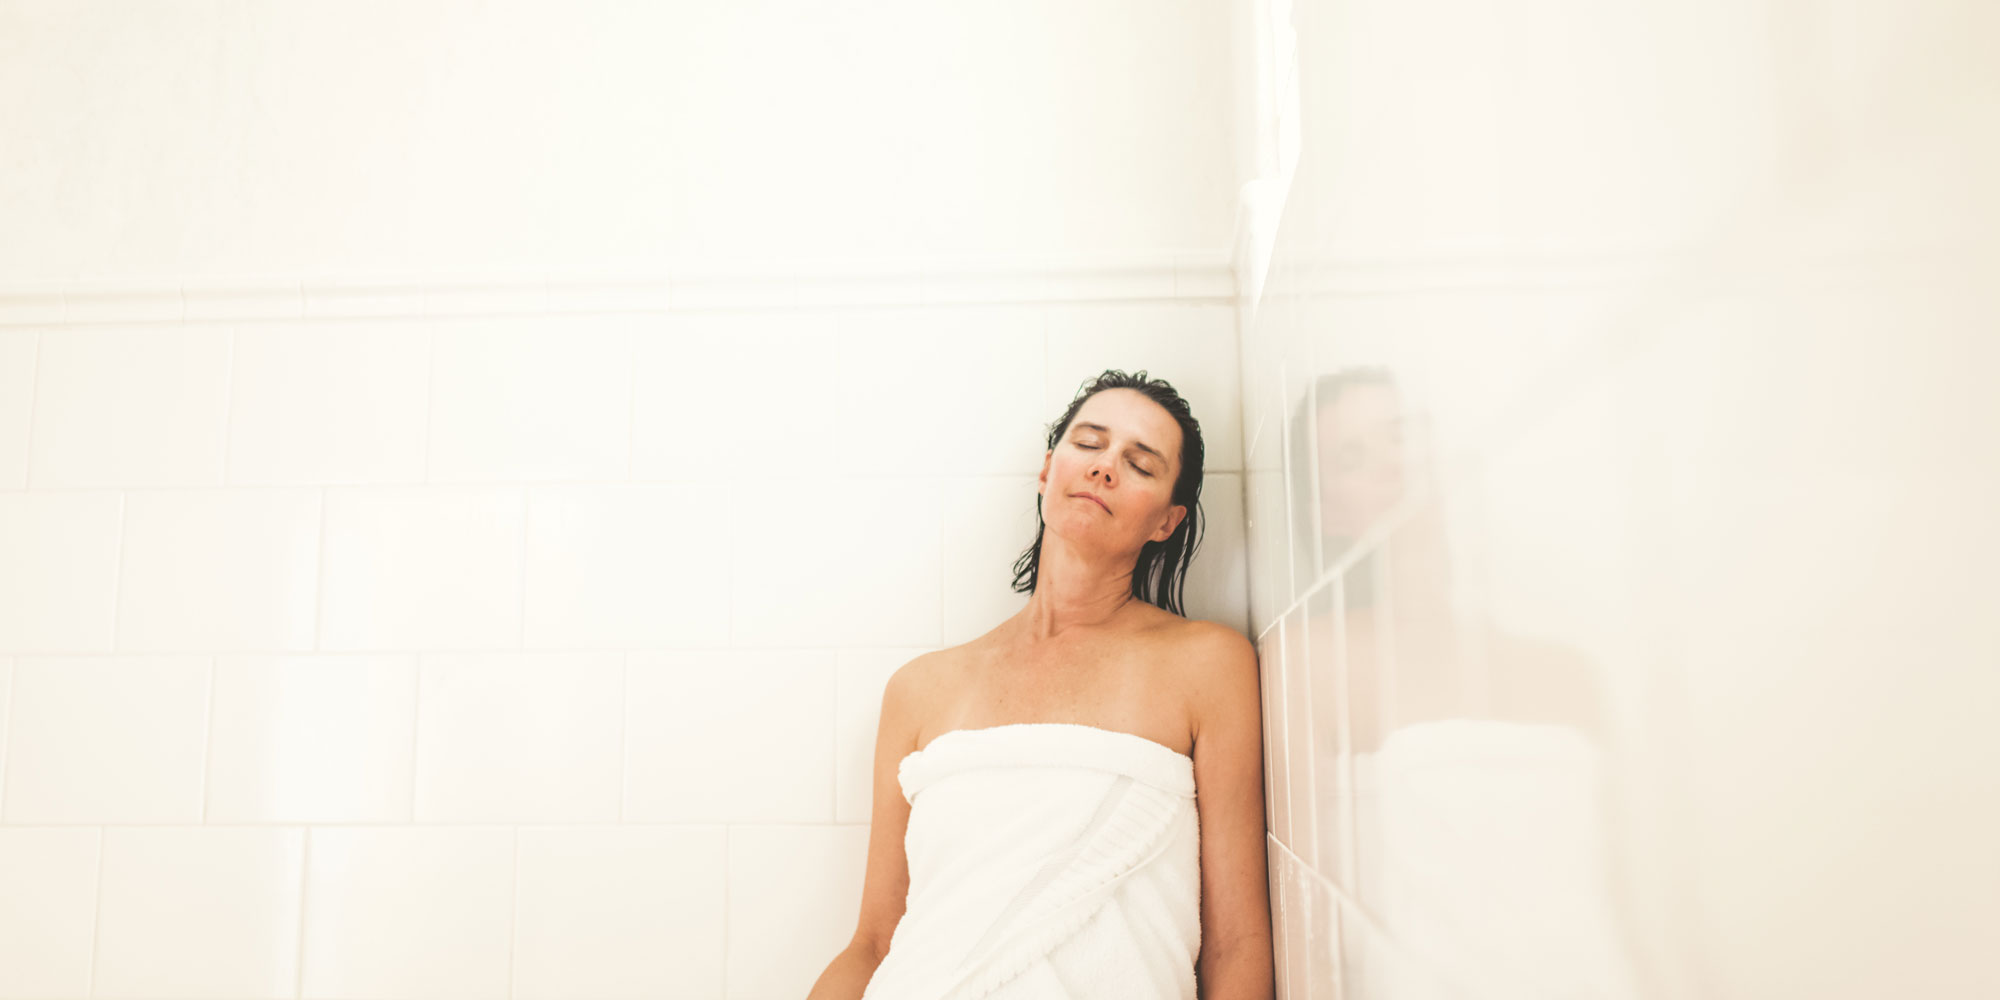 woman relaxing in spa setting